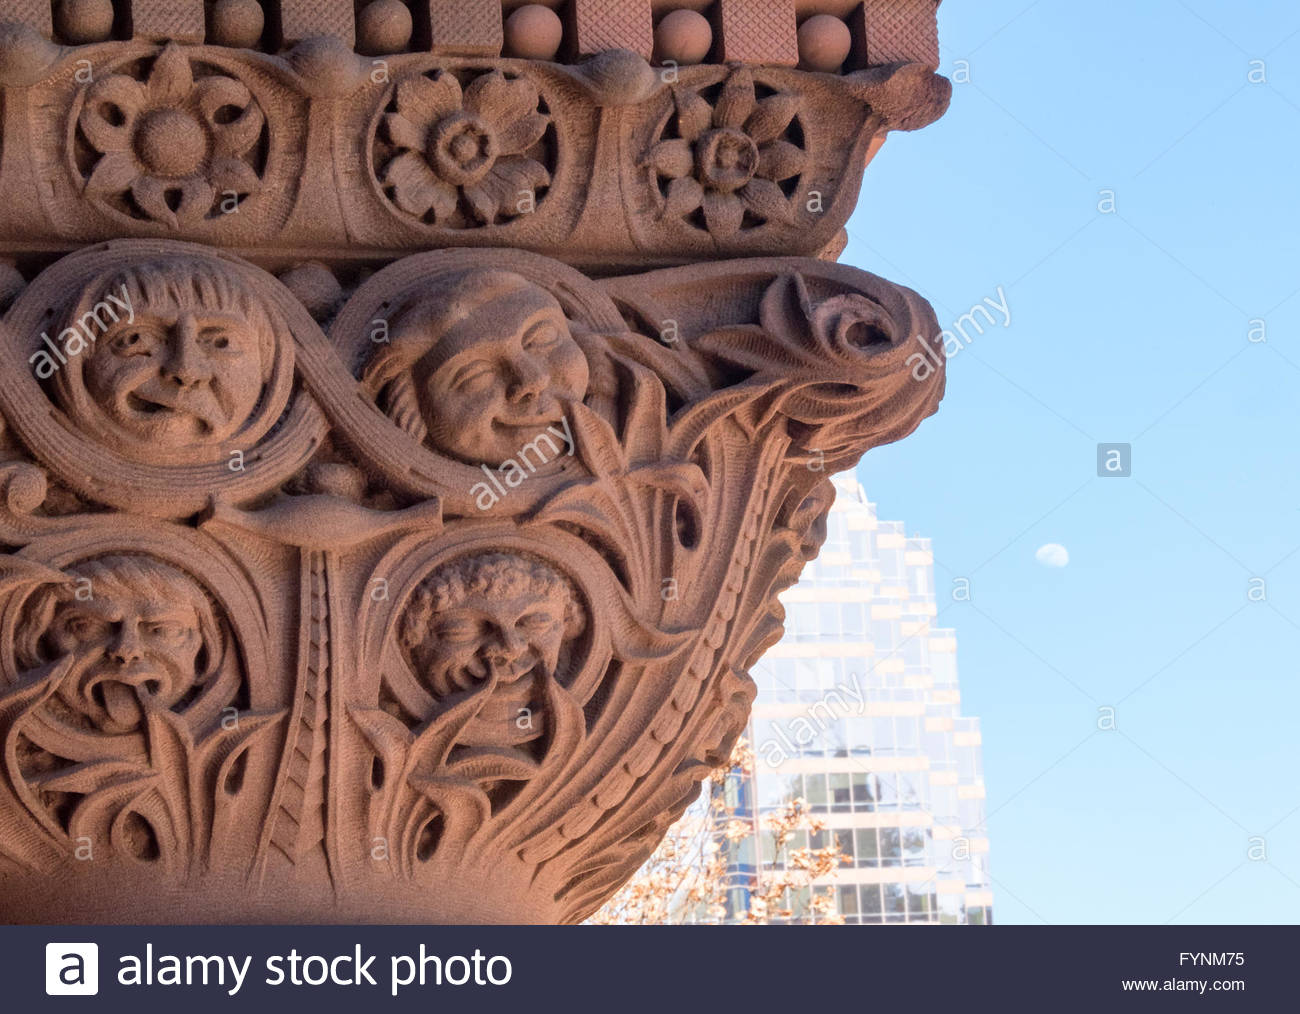 Old City Hall Romanesque Revival Architecture. The landmark is part of the city heritage and a major tourist landmark - Stock Image